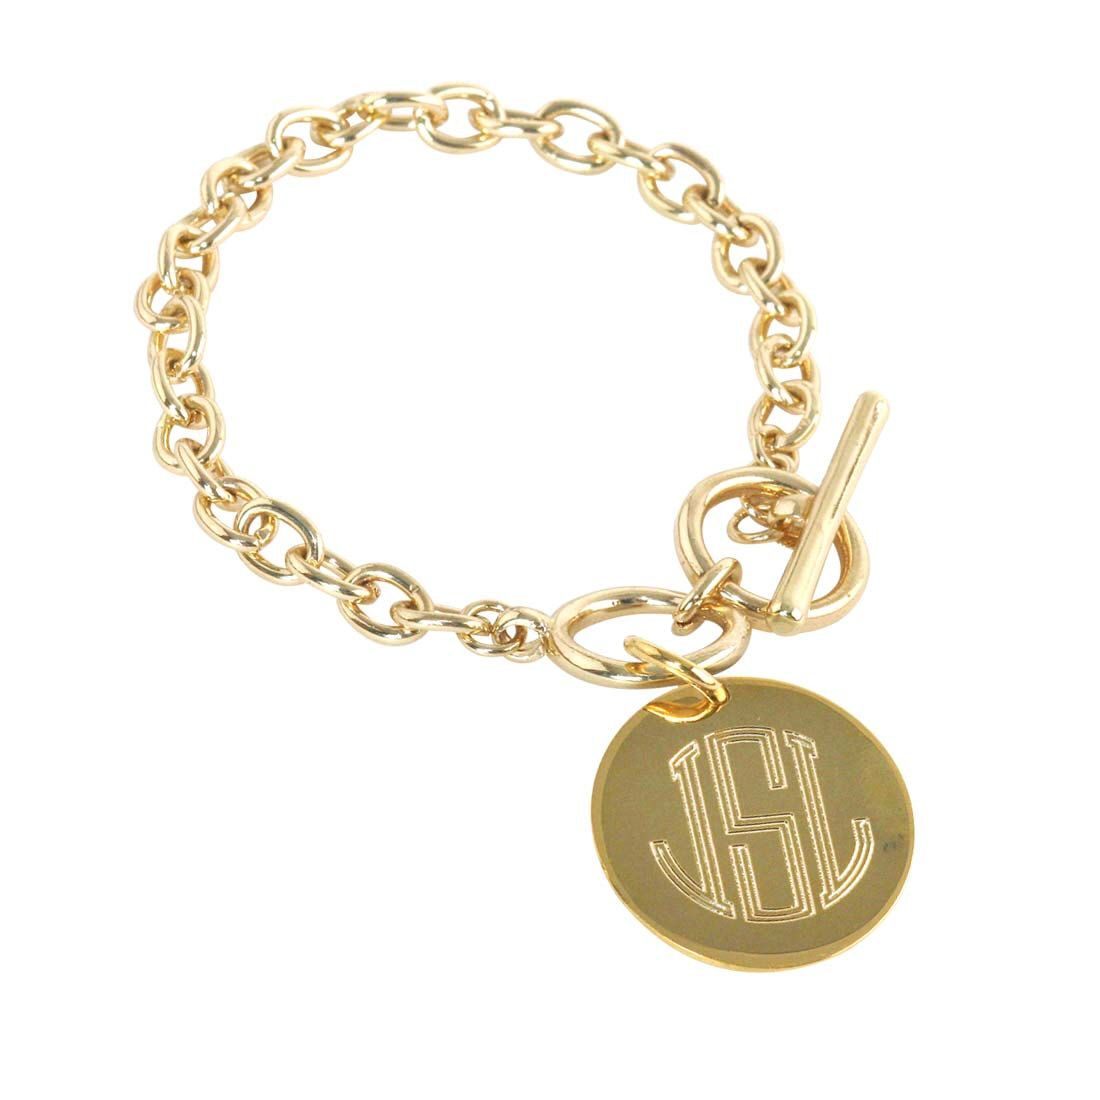 Engraved charm bracelet gold girl teen women silver monogrammed